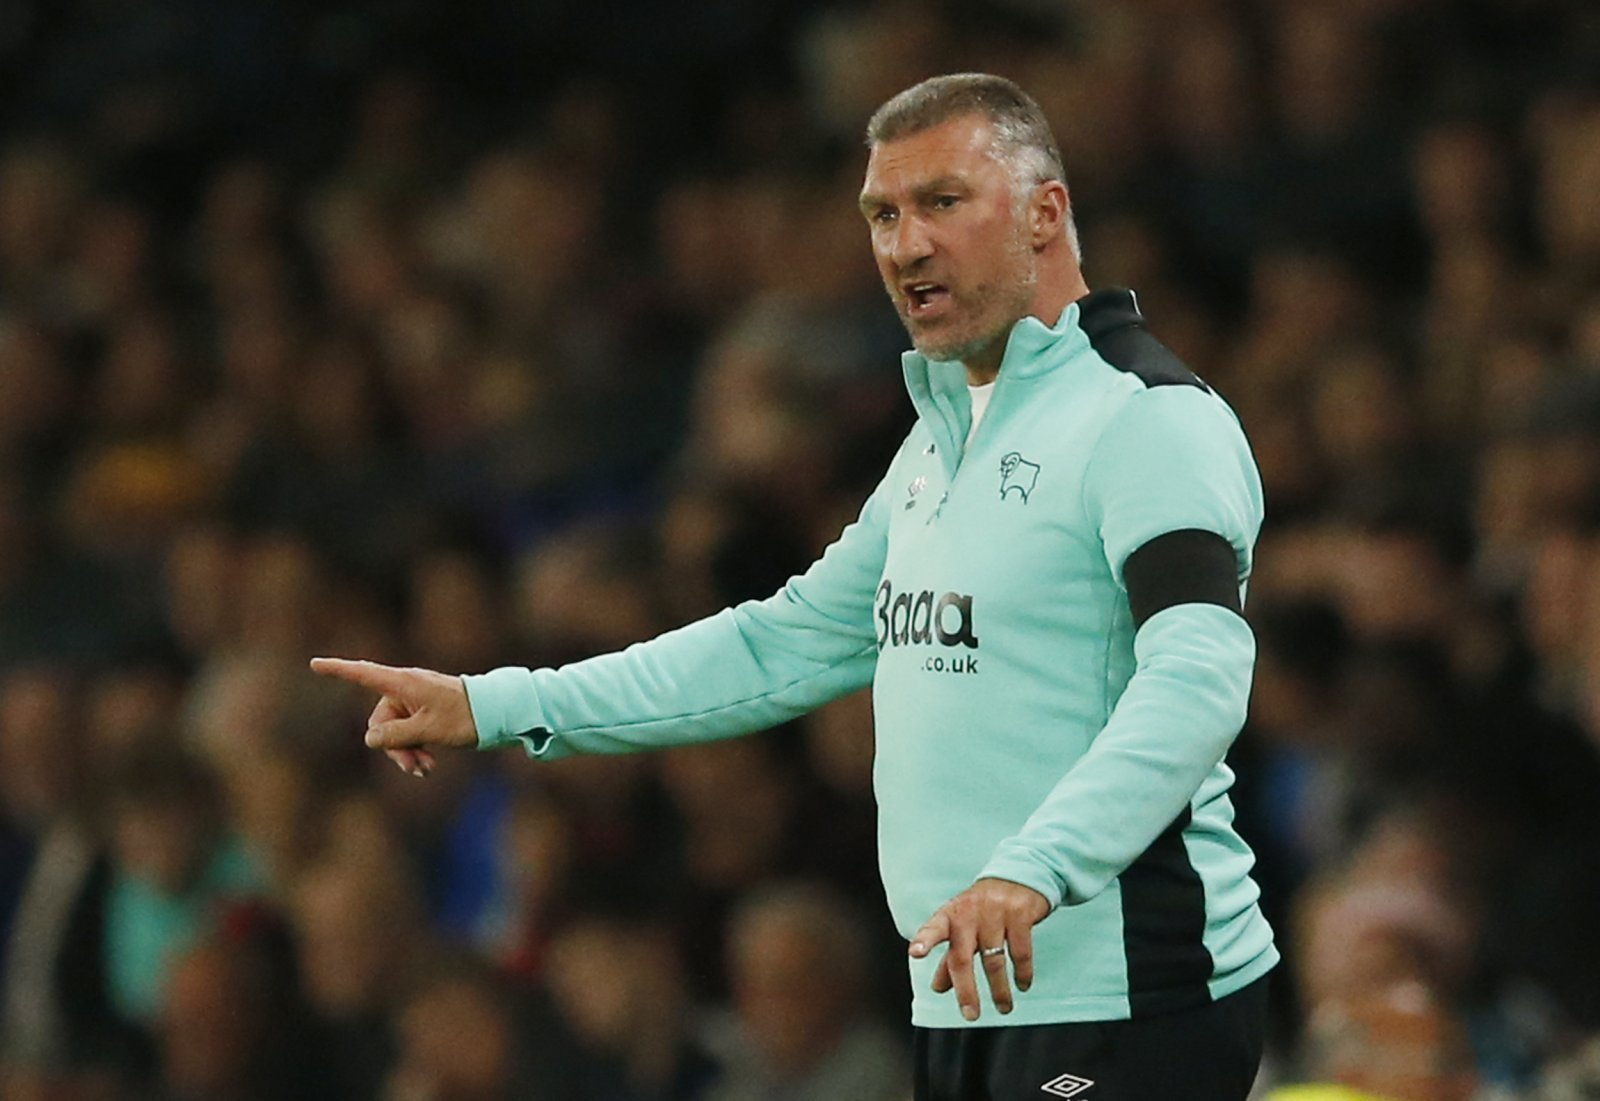 Sunderland: Many fans want Nigel Pearson as their new manager